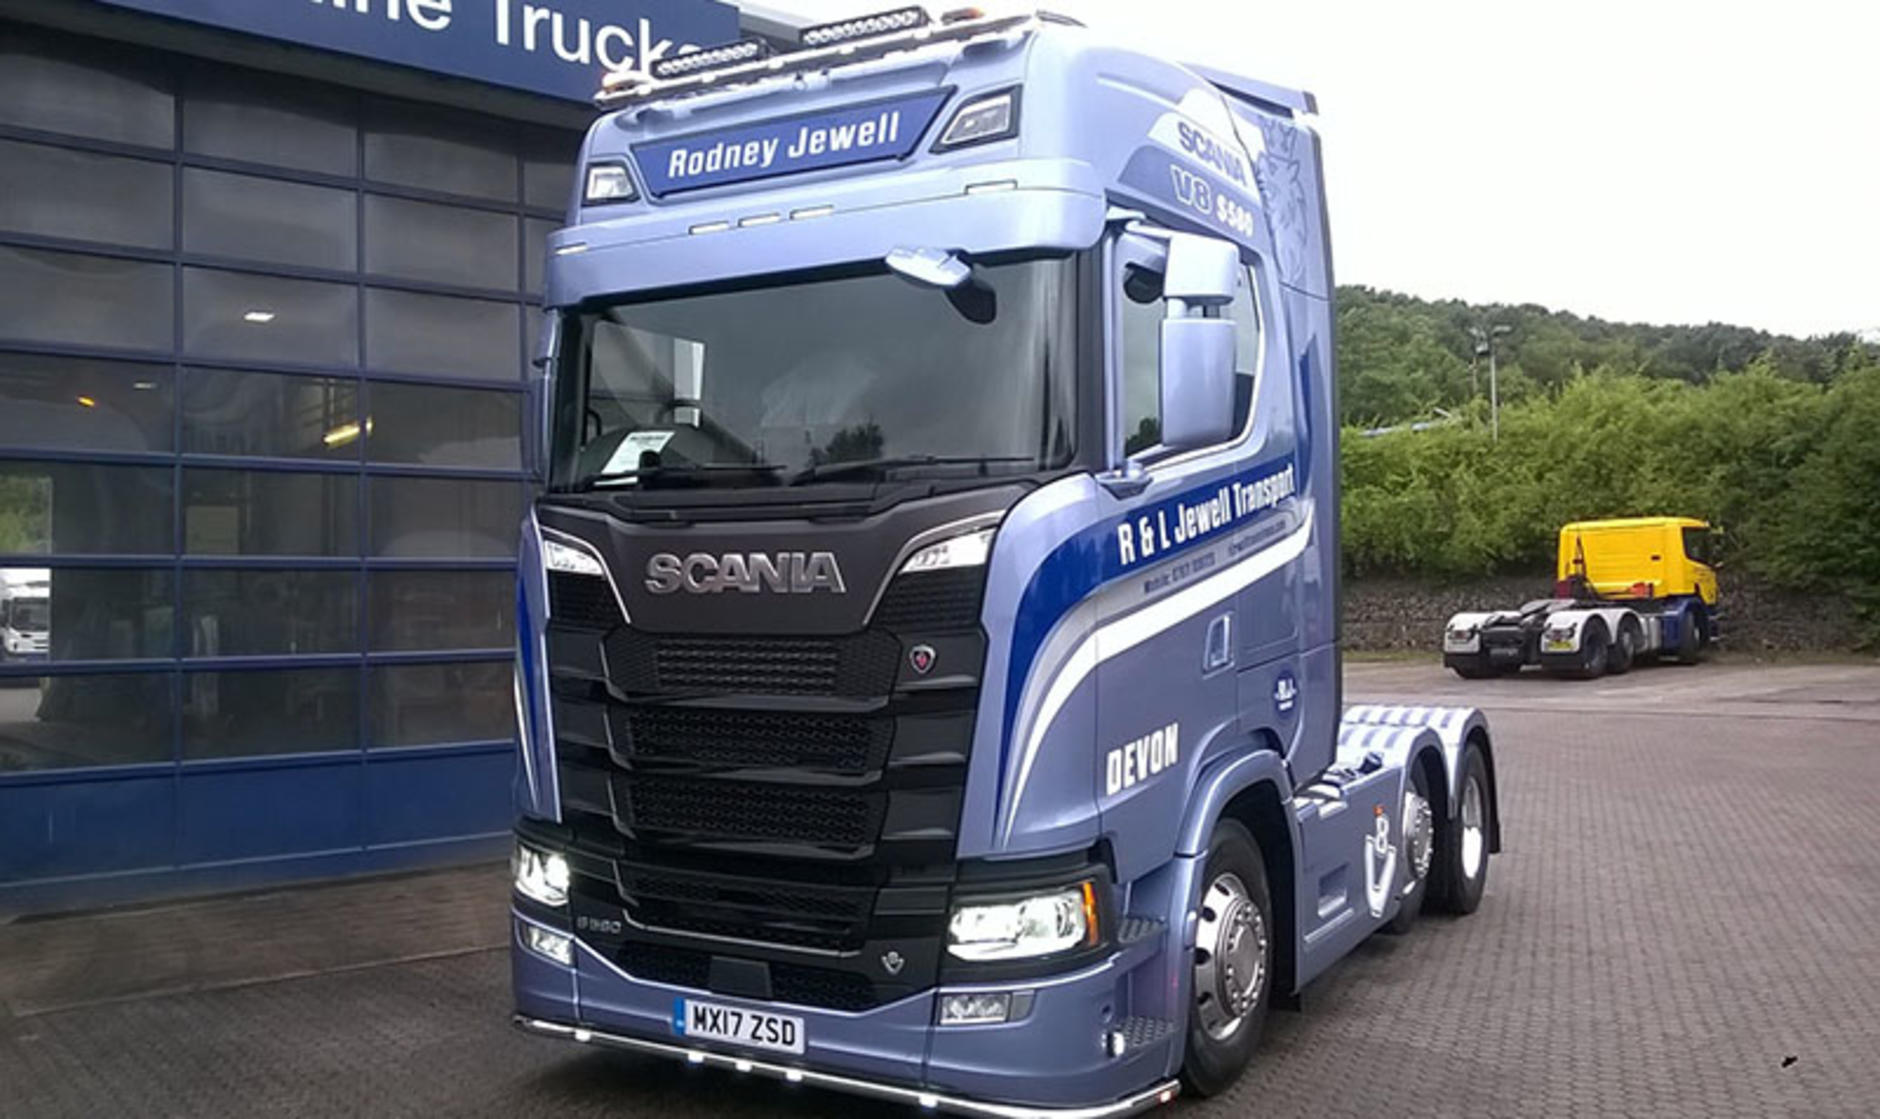 Sold First Used Next Generation V8 Scania Commercial Motor